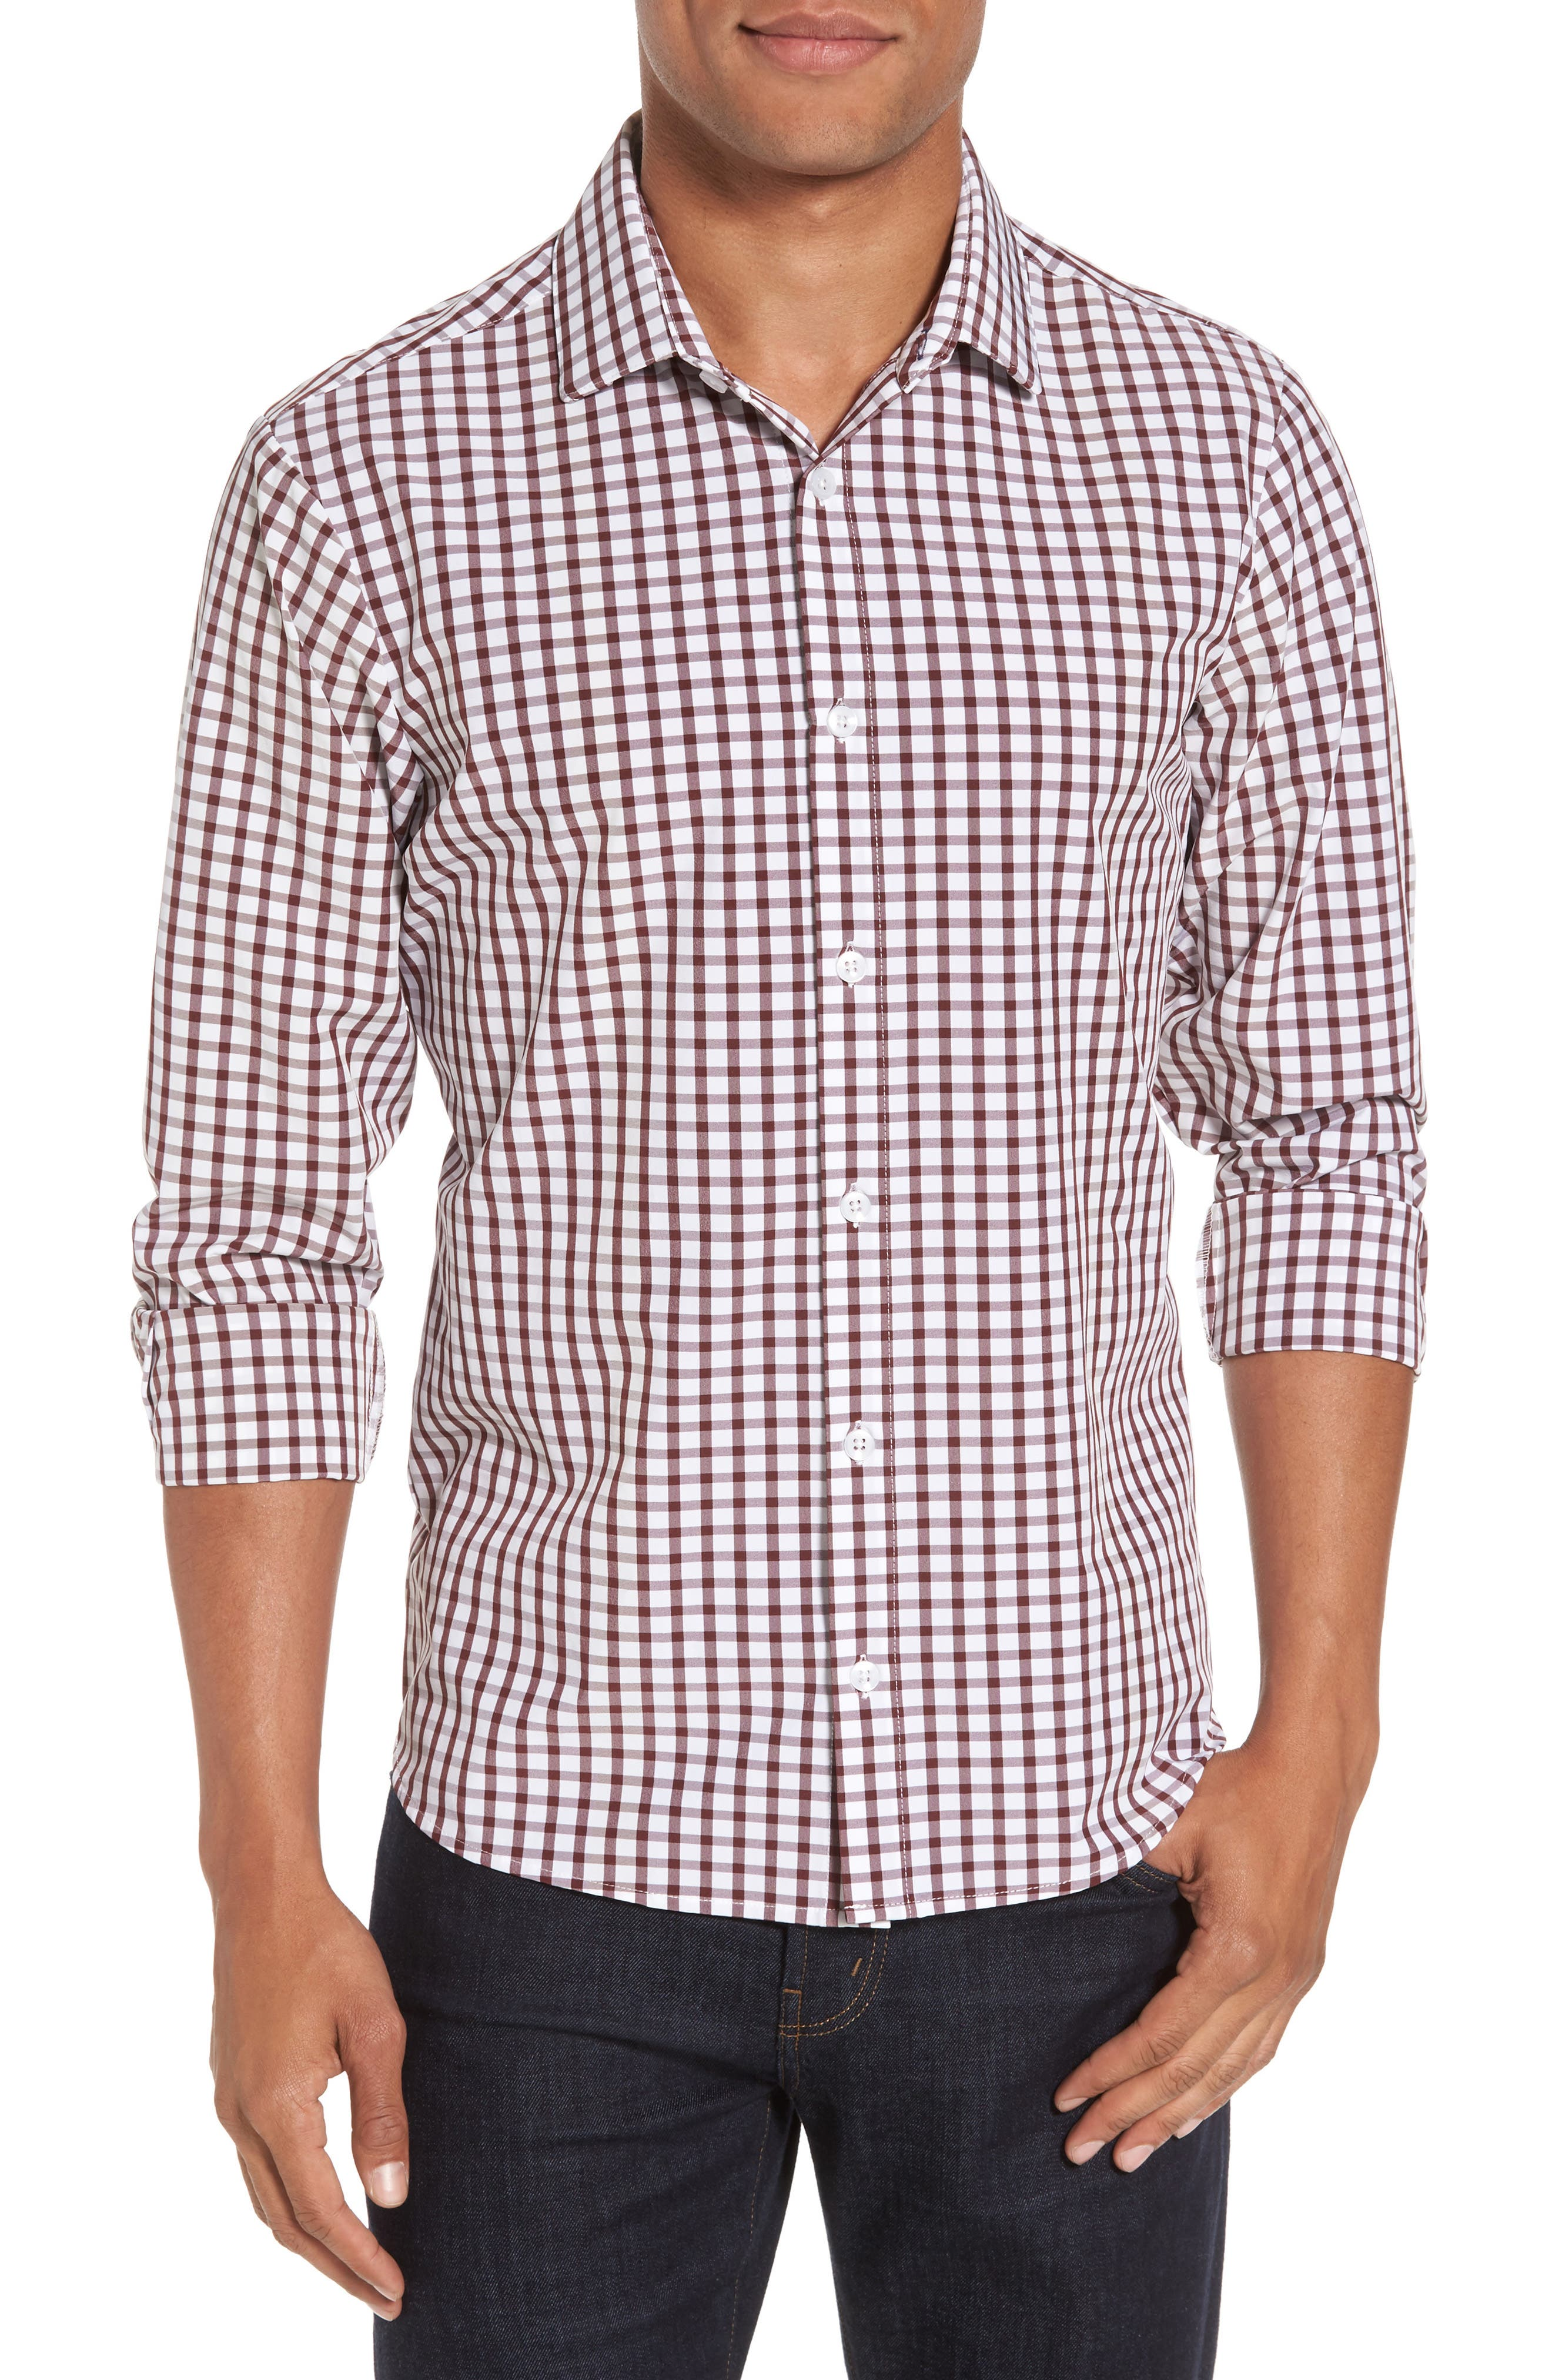 Cooper Check Performance Sport Shirt,                             Main thumbnail 1, color,                             600